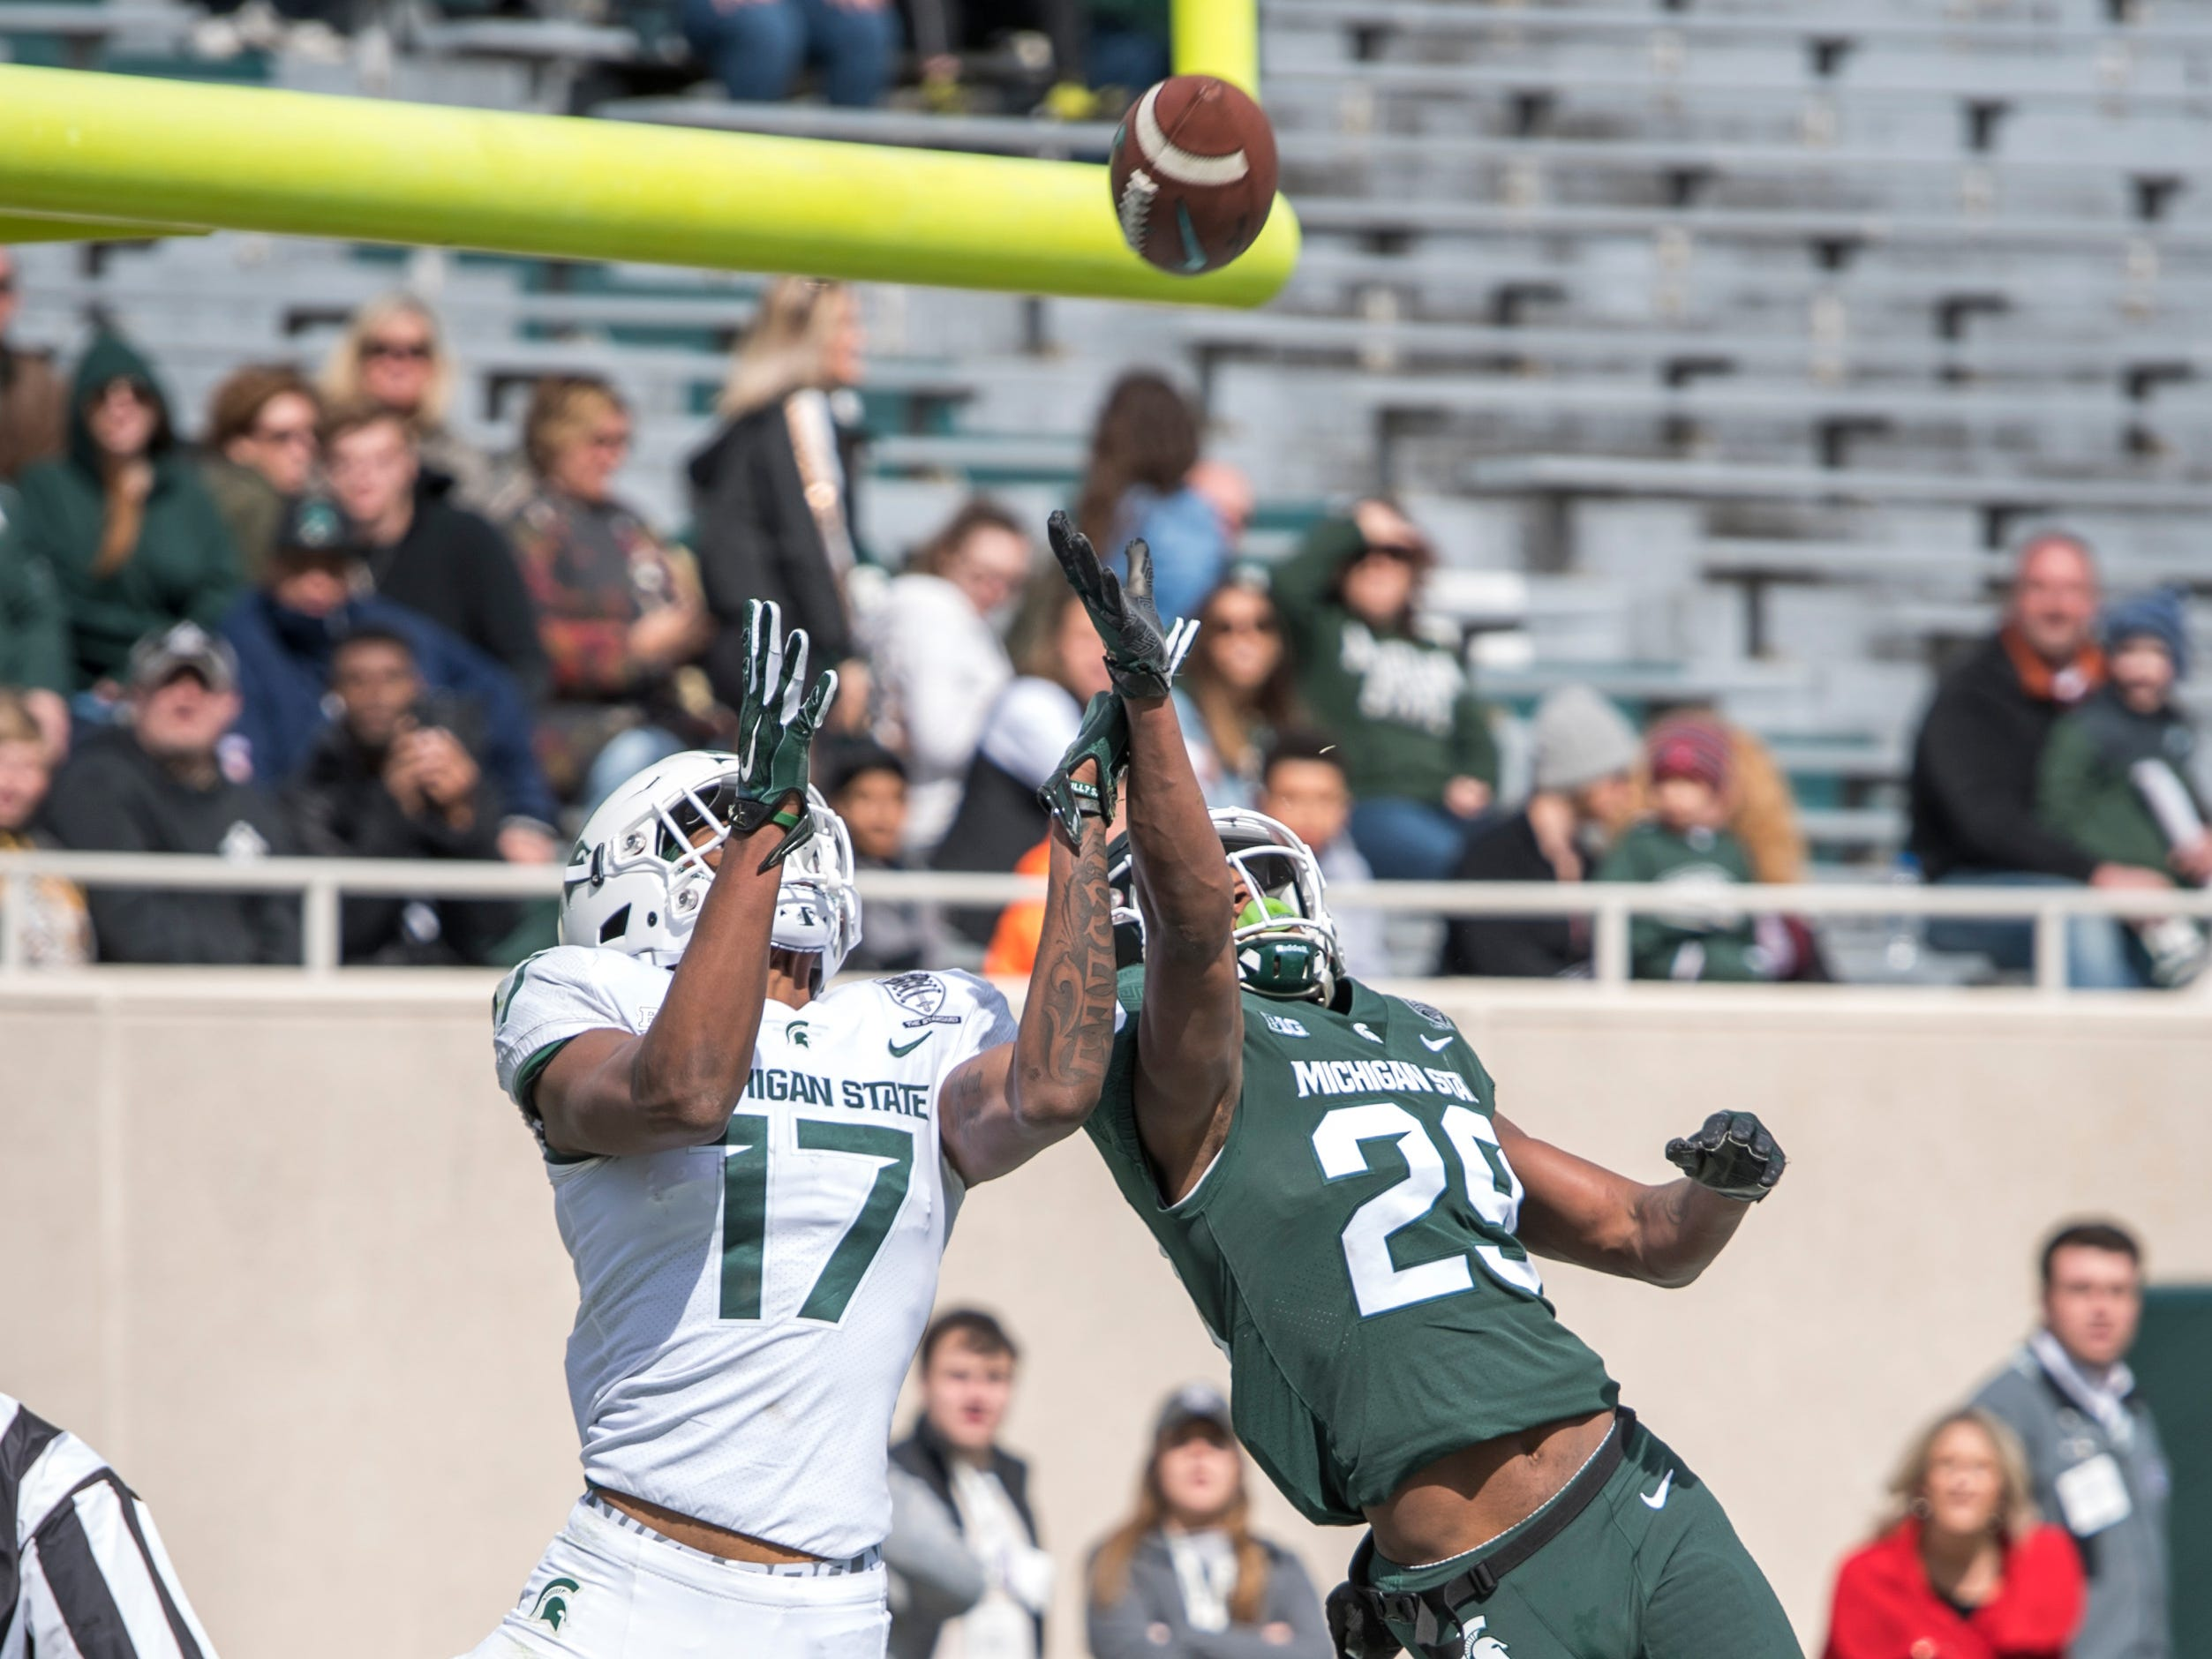 Wide receiver Tre Mosley leaps for a pass while being covered by cornerback Shakur Brown.